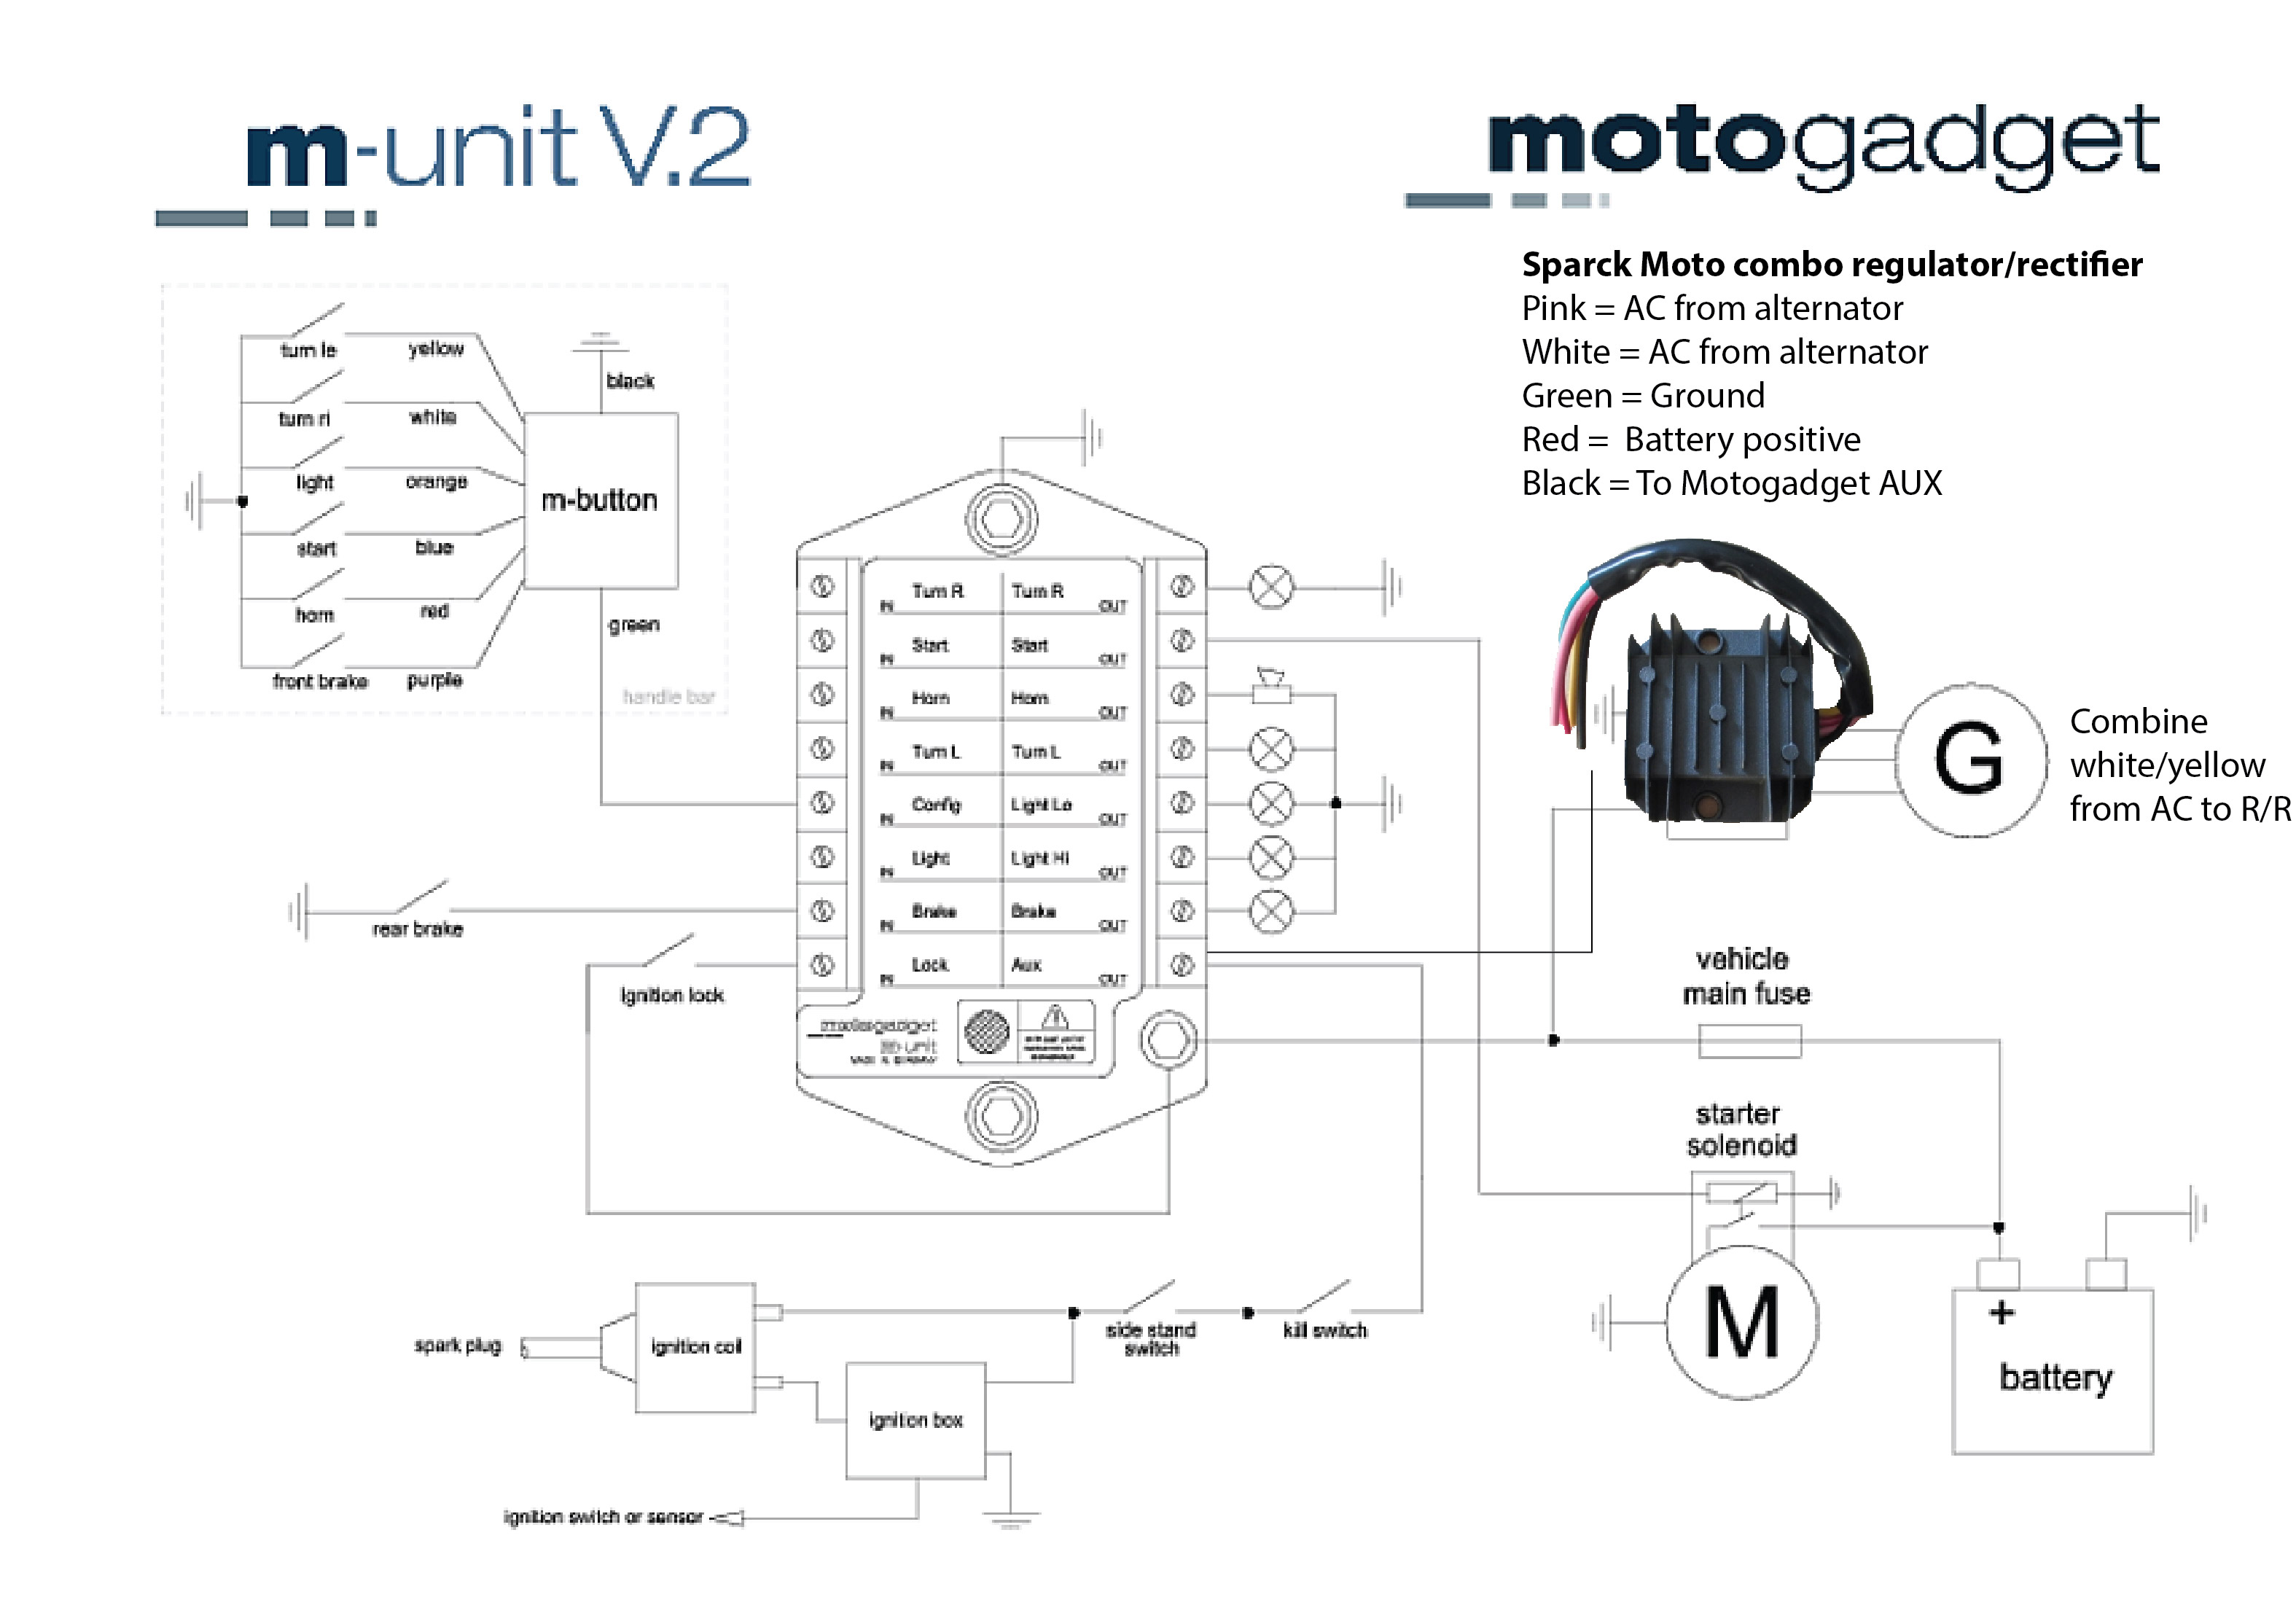 motogadget m r diagram